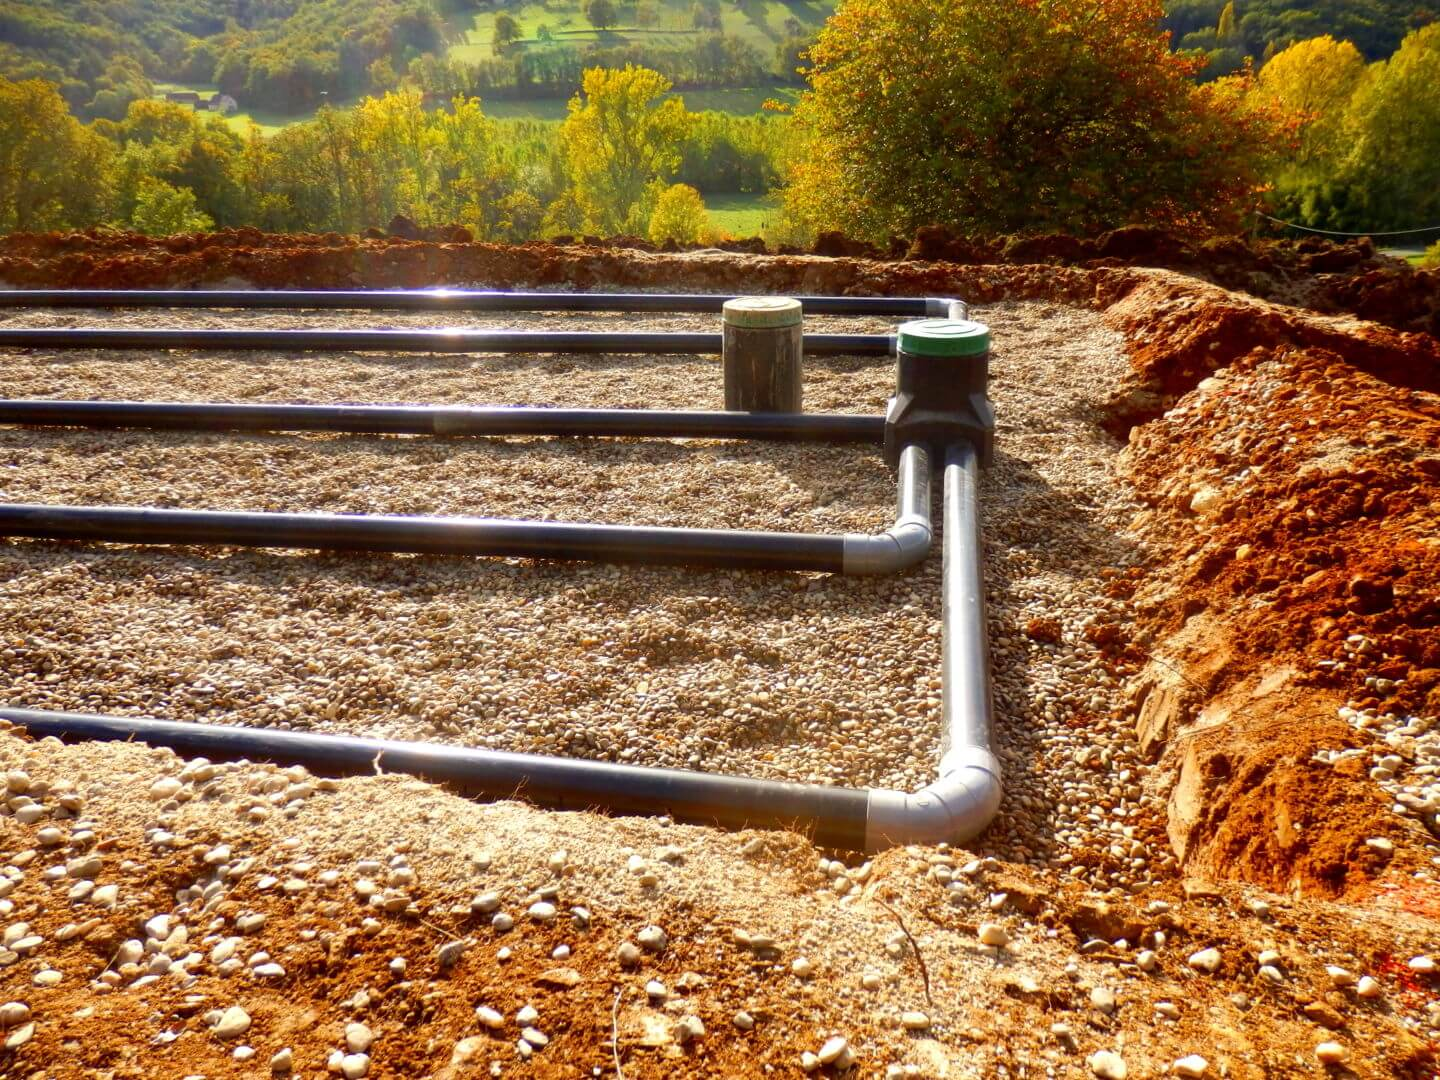 Municipal and Community Septic Systems-Savannah Septic Tank Services, Installation, & Repairs-We offer Septic Service & Repairs, Septic Tank Installations, Septic Tank Cleaning, Commercial, Septic System, Drain Cleaning, Line Snaking, Portable Toilet, Grease Trap Pumping & Cleaning, Septic Tank Pumping, Sewage Pump, Sewer Line Repair, Septic Tank Replacement, Septic Maintenance, Sewer Line Replacement, Porta Potty Rentals